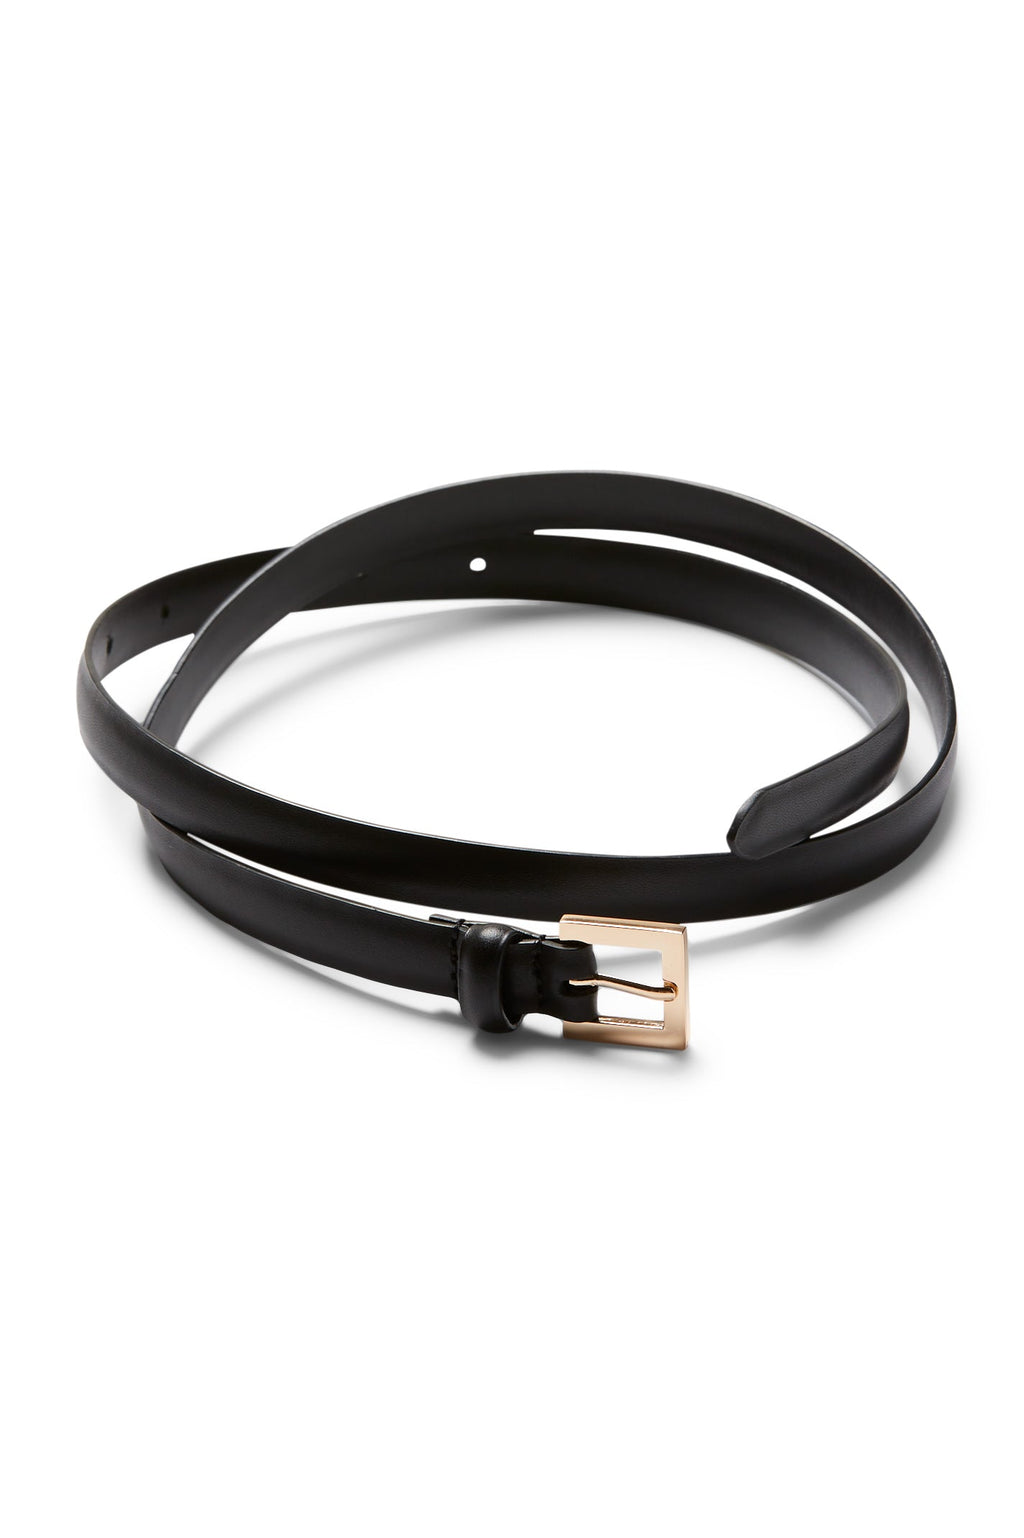 MINI LEATHER BELT 1.5